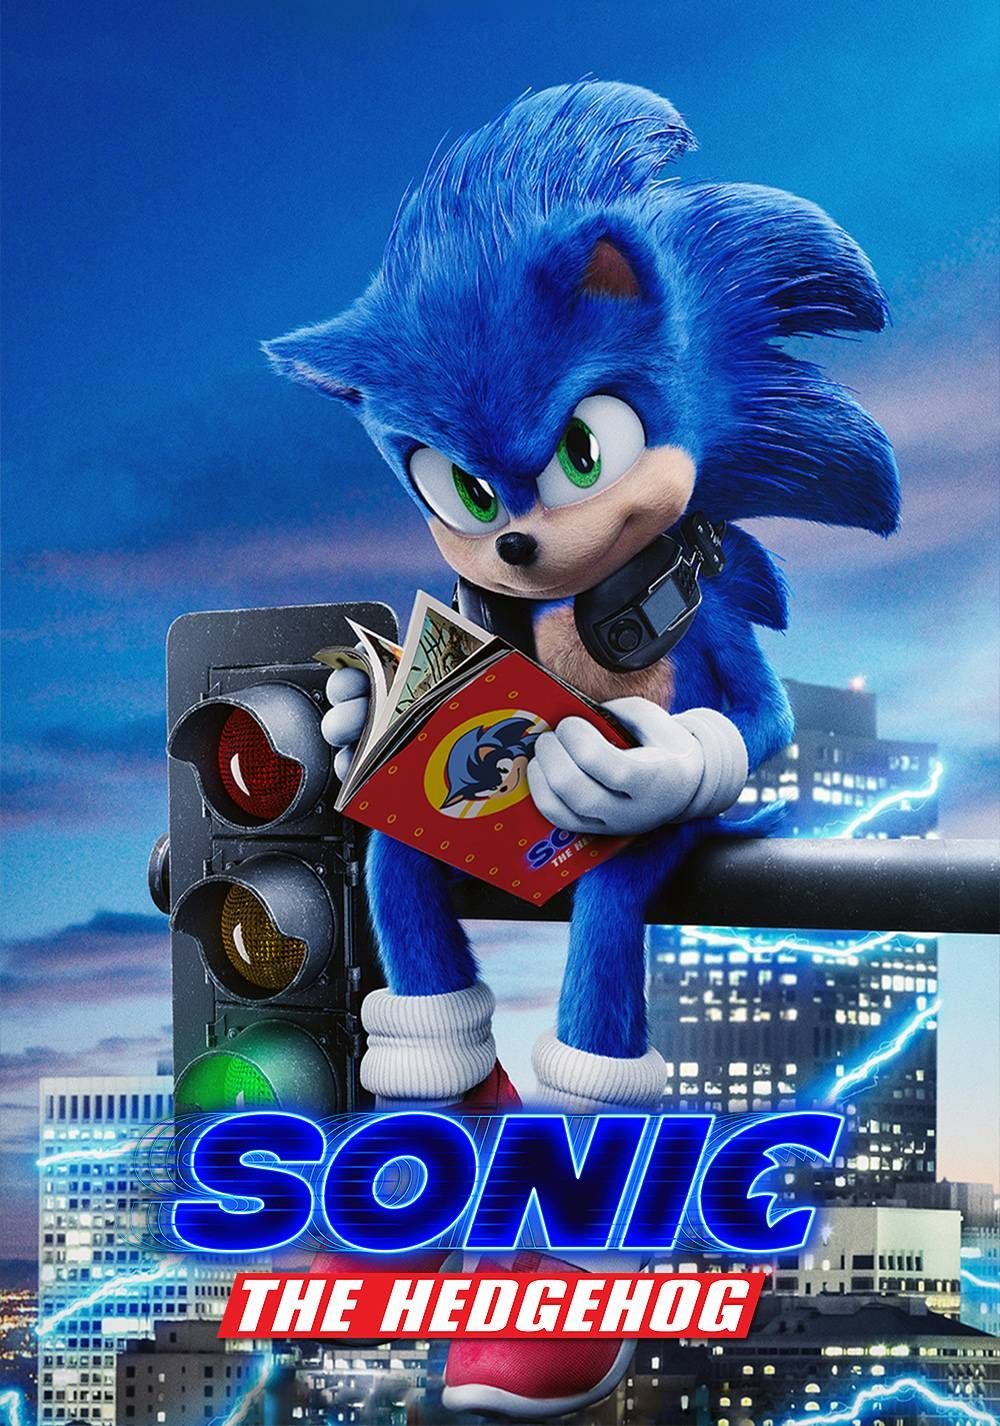 Sonic Le Film (Sonic The Hedgehog) 2020 TrueFrench 1080p HDLight BluRay AC3 x265-Thebatou8652 Exclusivité